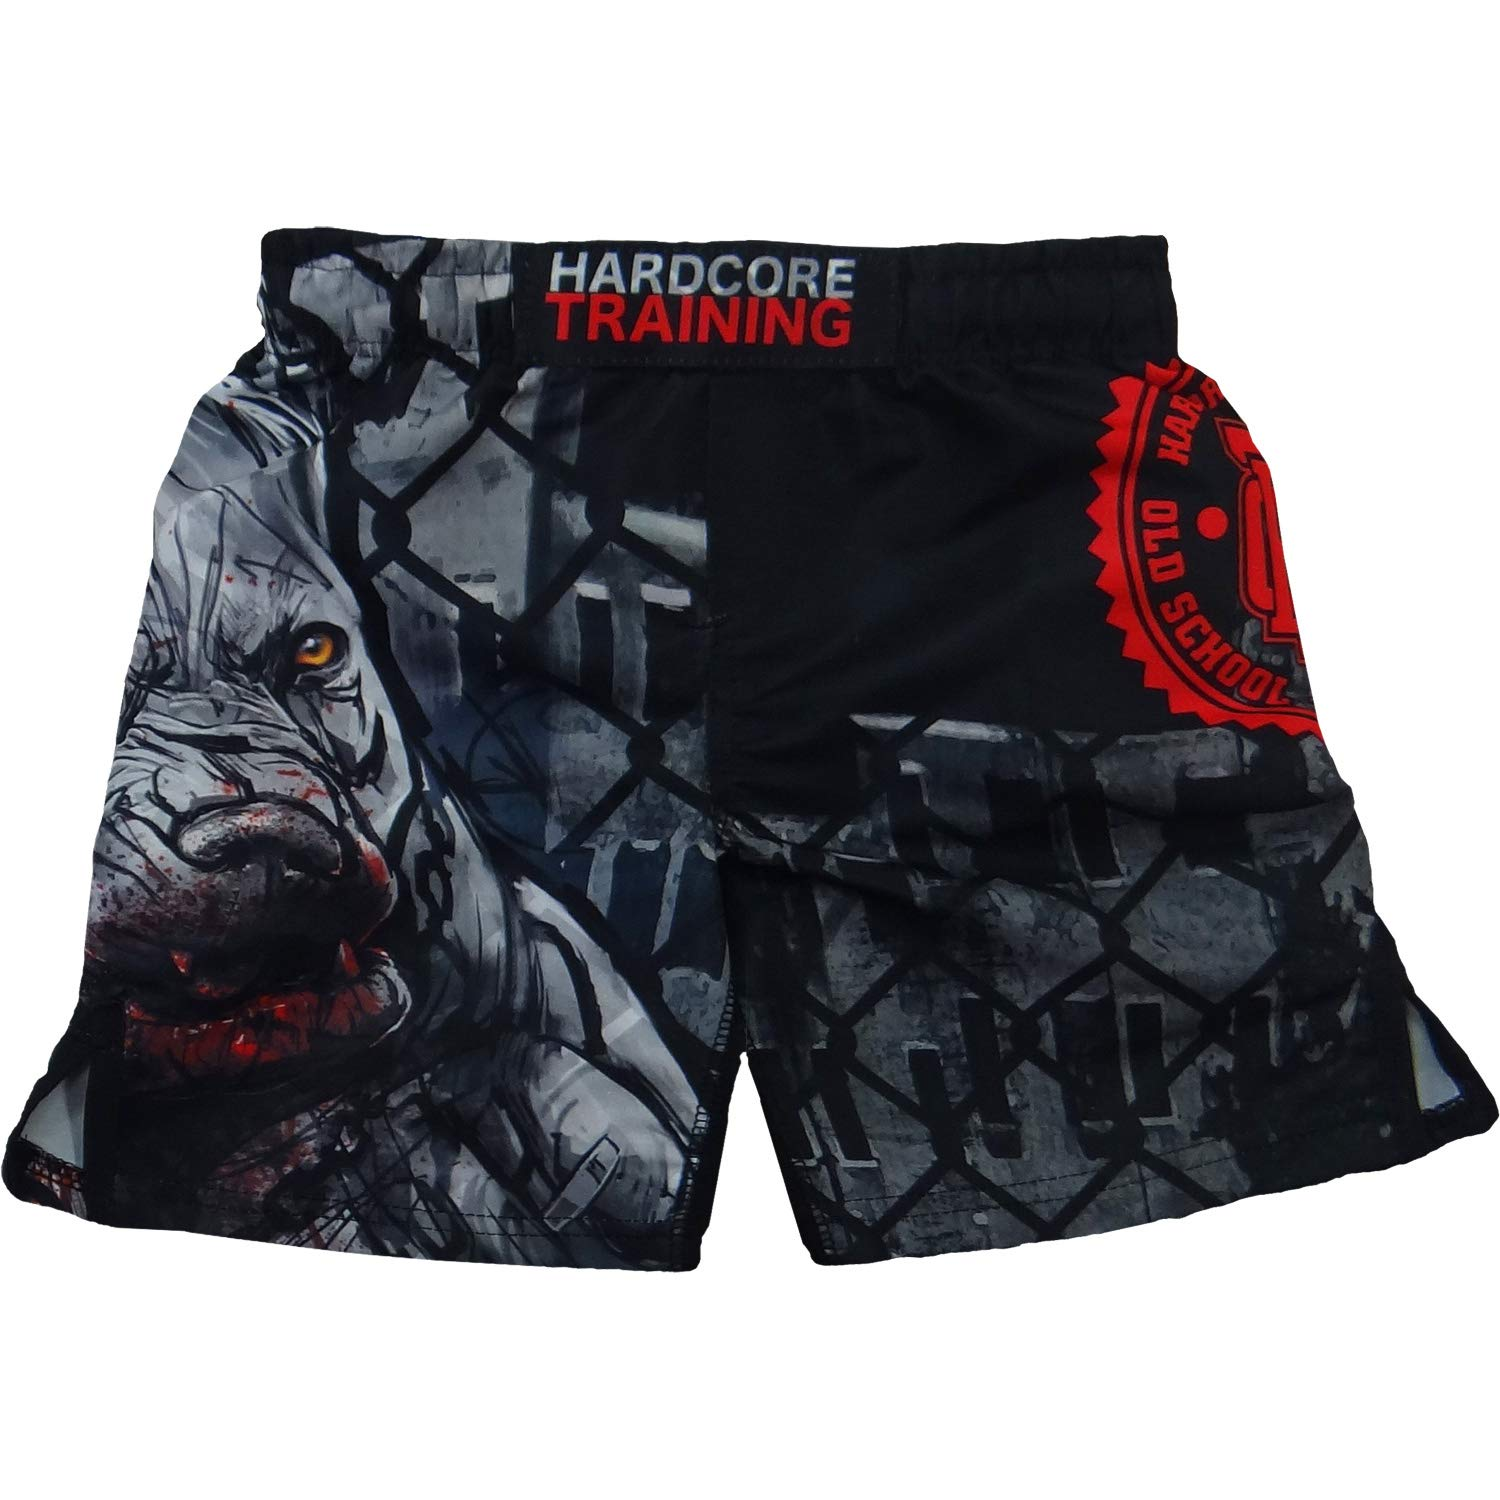 Hardcore Training Kids Shorts PitbullCity-10 Years Black/Red